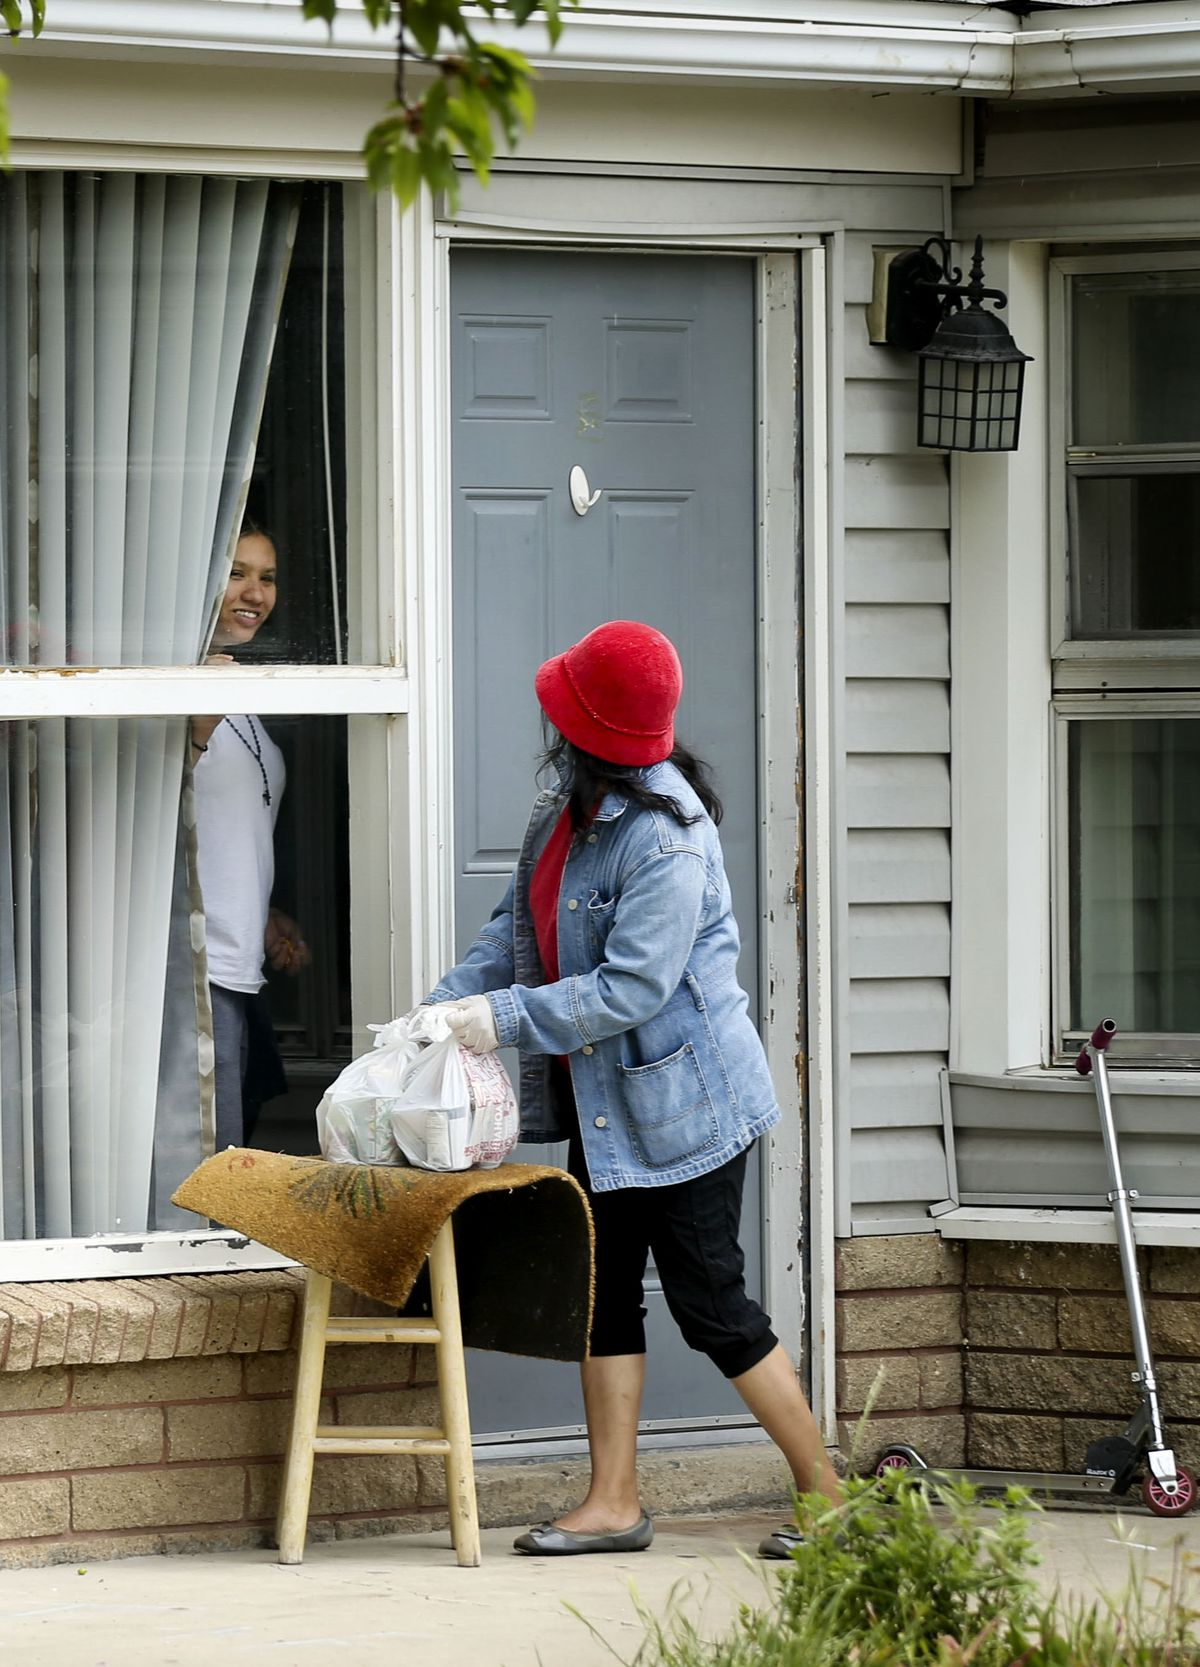 Elizabeth Montoya, right, delivers food to Macedonia Bonilla who was self-quarantining during the pandemic in the Glendale community of Salt Lake City on Wednesday, May 12, 2020.